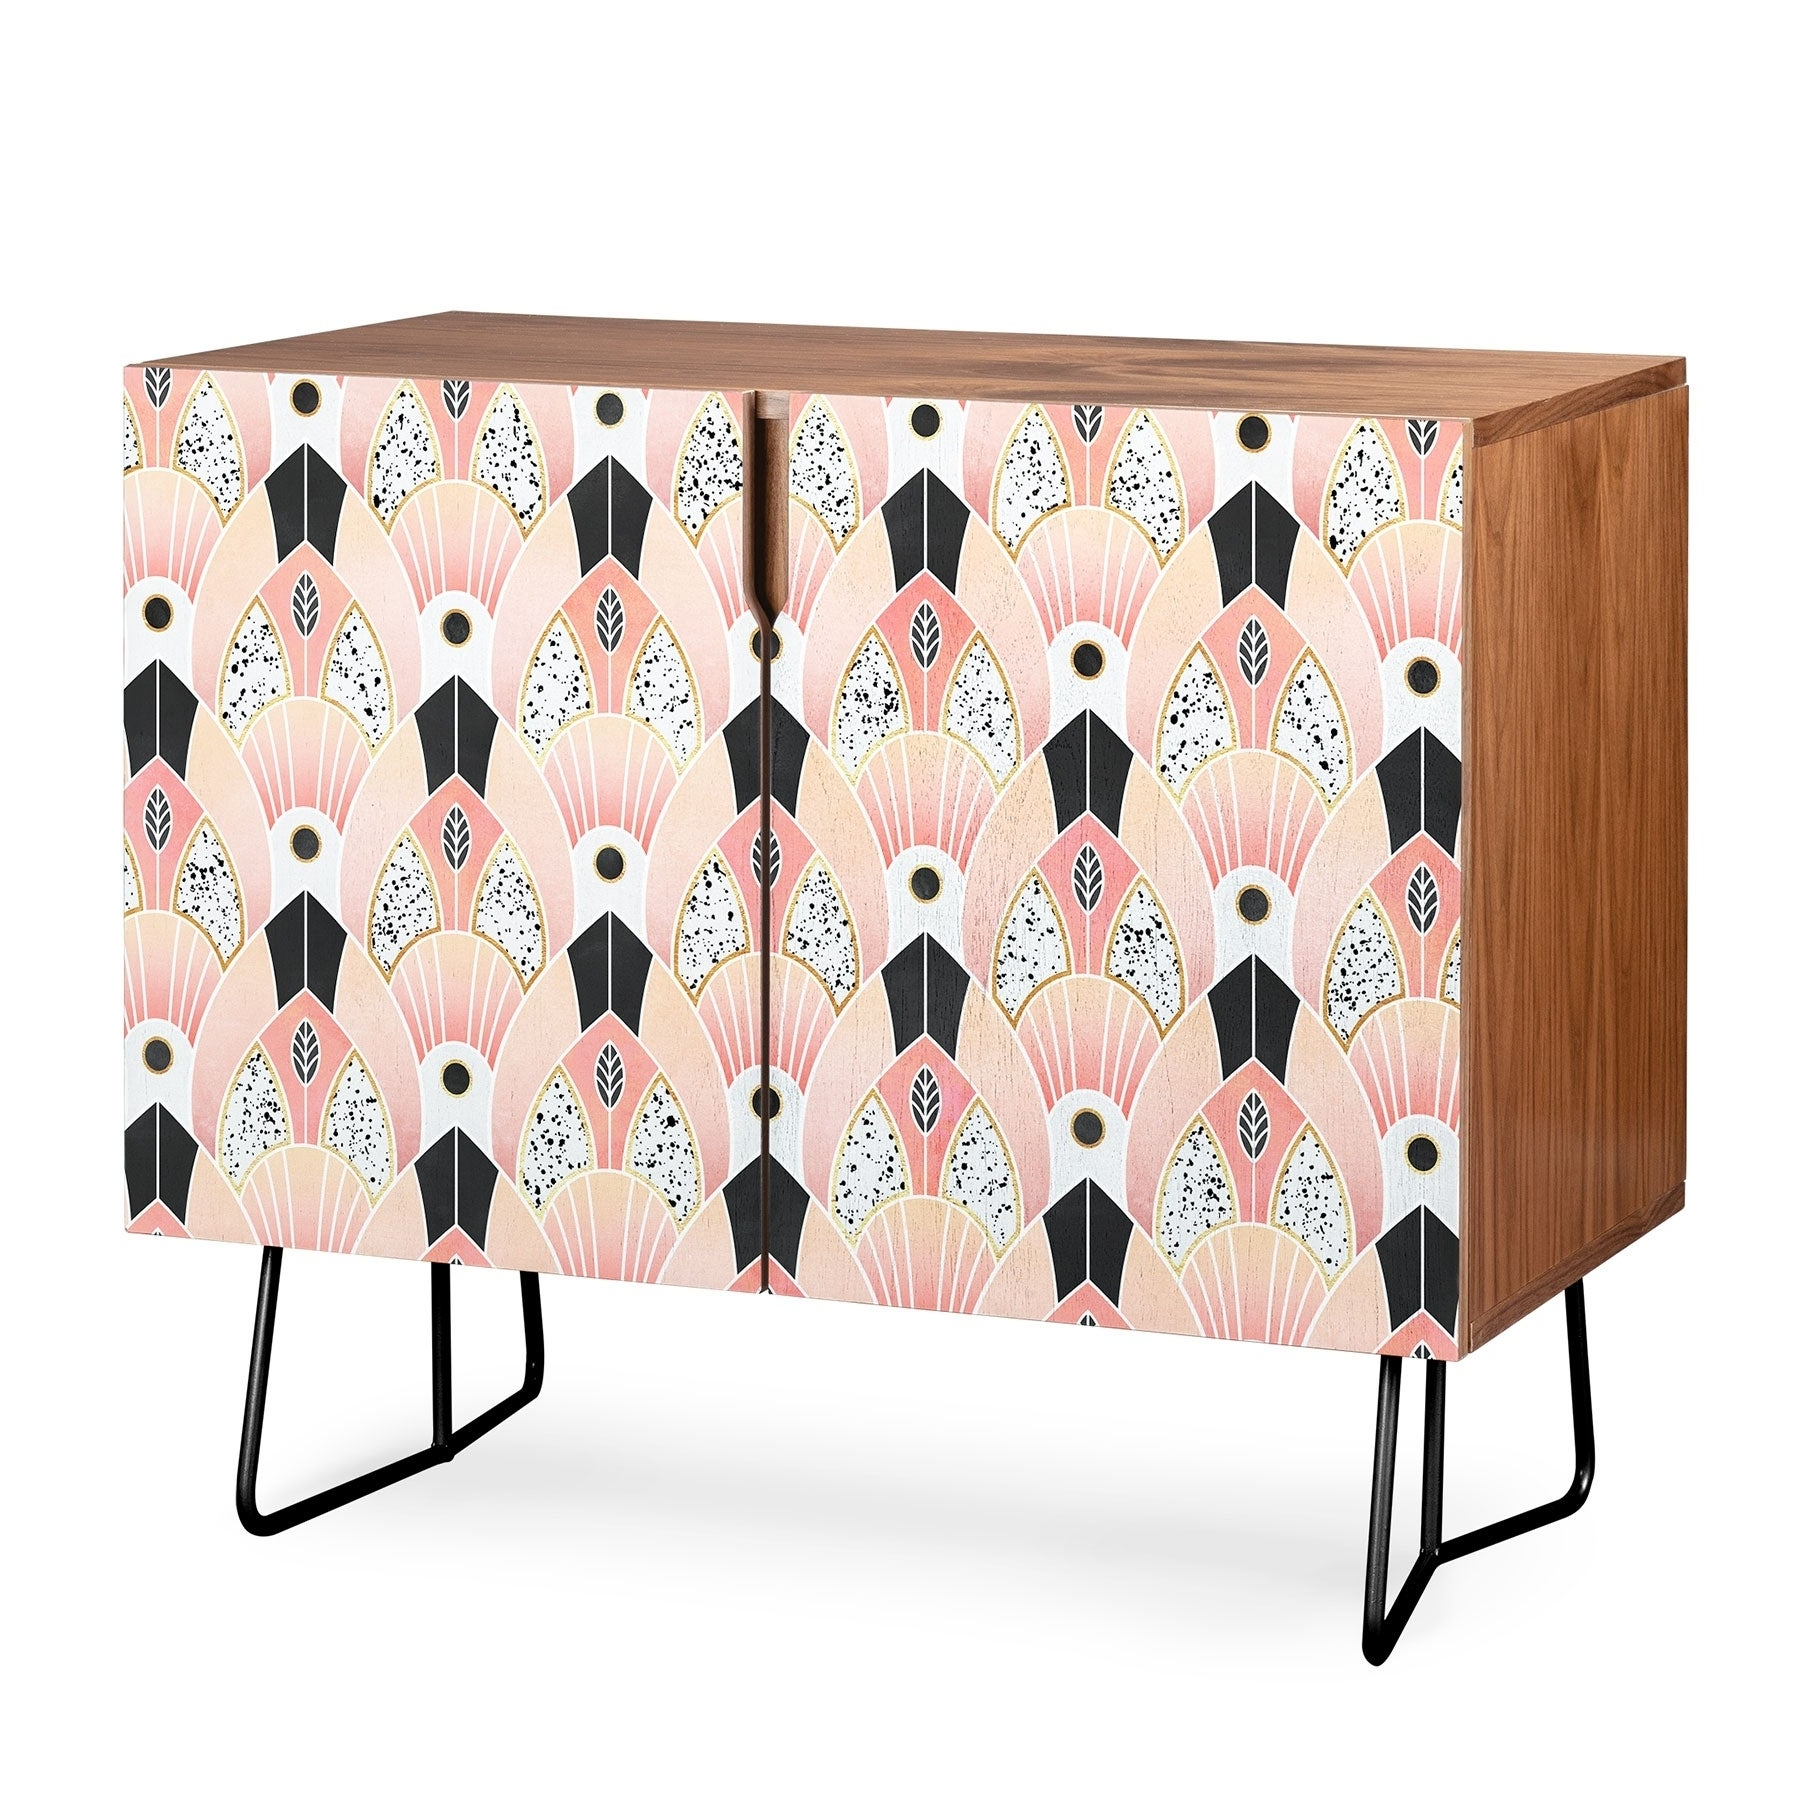 Deny Designs Blush Deco Credenza (Birch Or Walnut, 2 Leg Options) Intended For Blush Deco Credenzas (View 10 of 20)